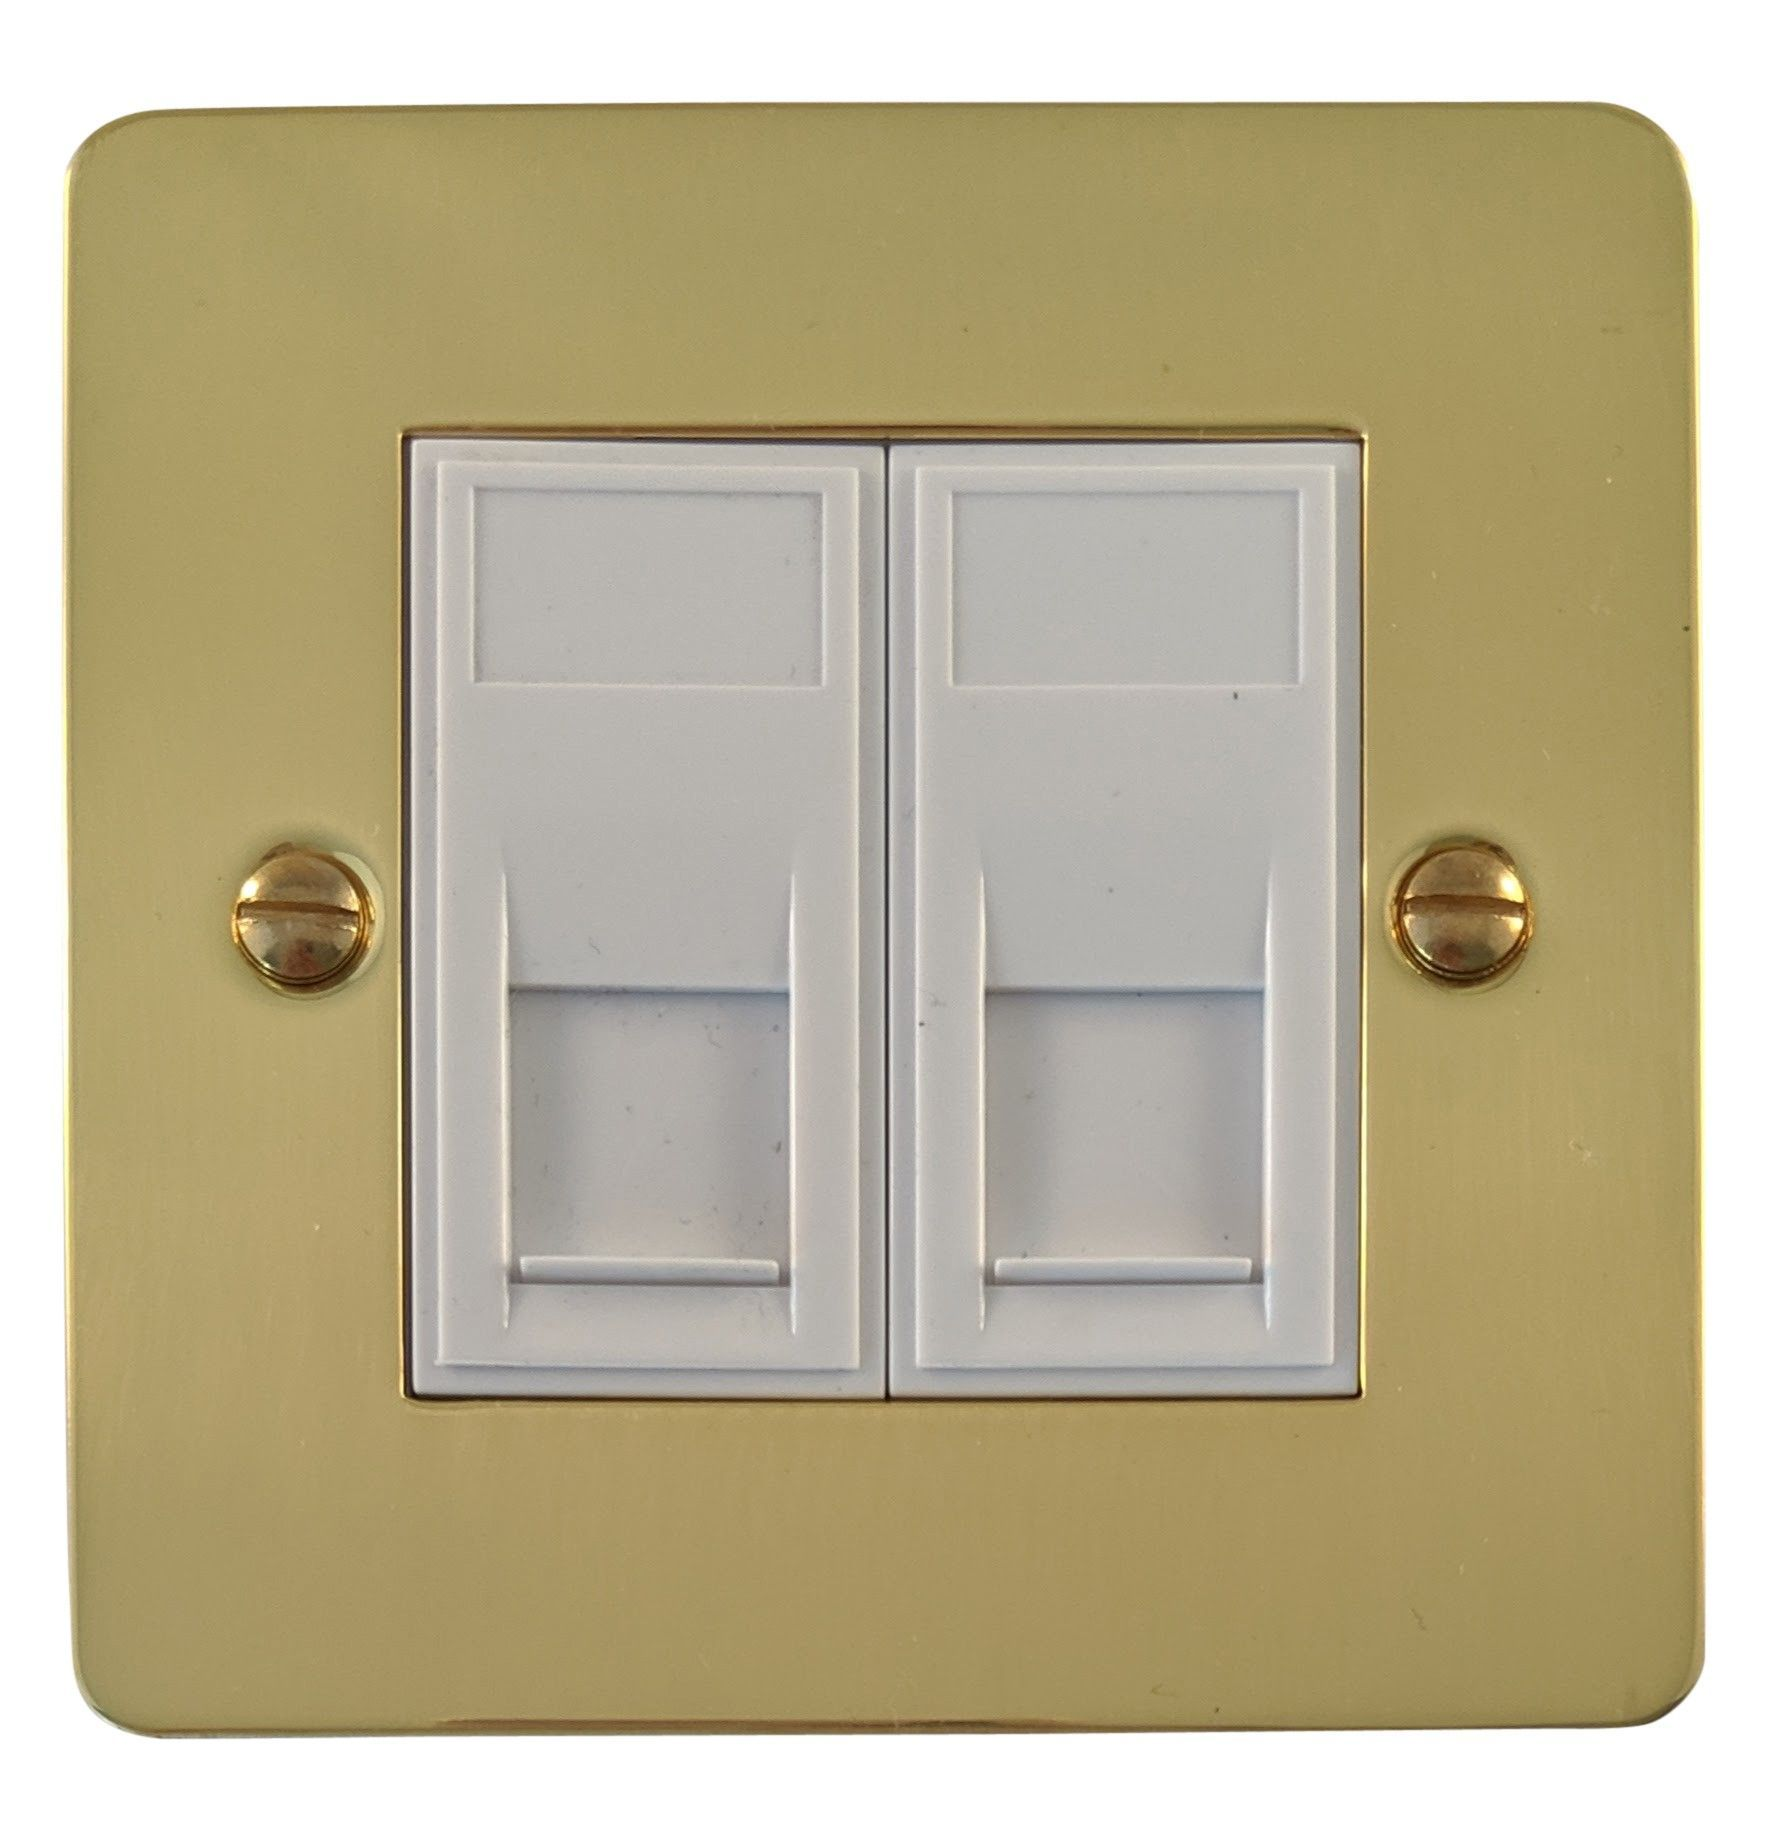 G&H FB64W Flat Plate Polished Brass 2 Gang Slave BT Telephone Socket